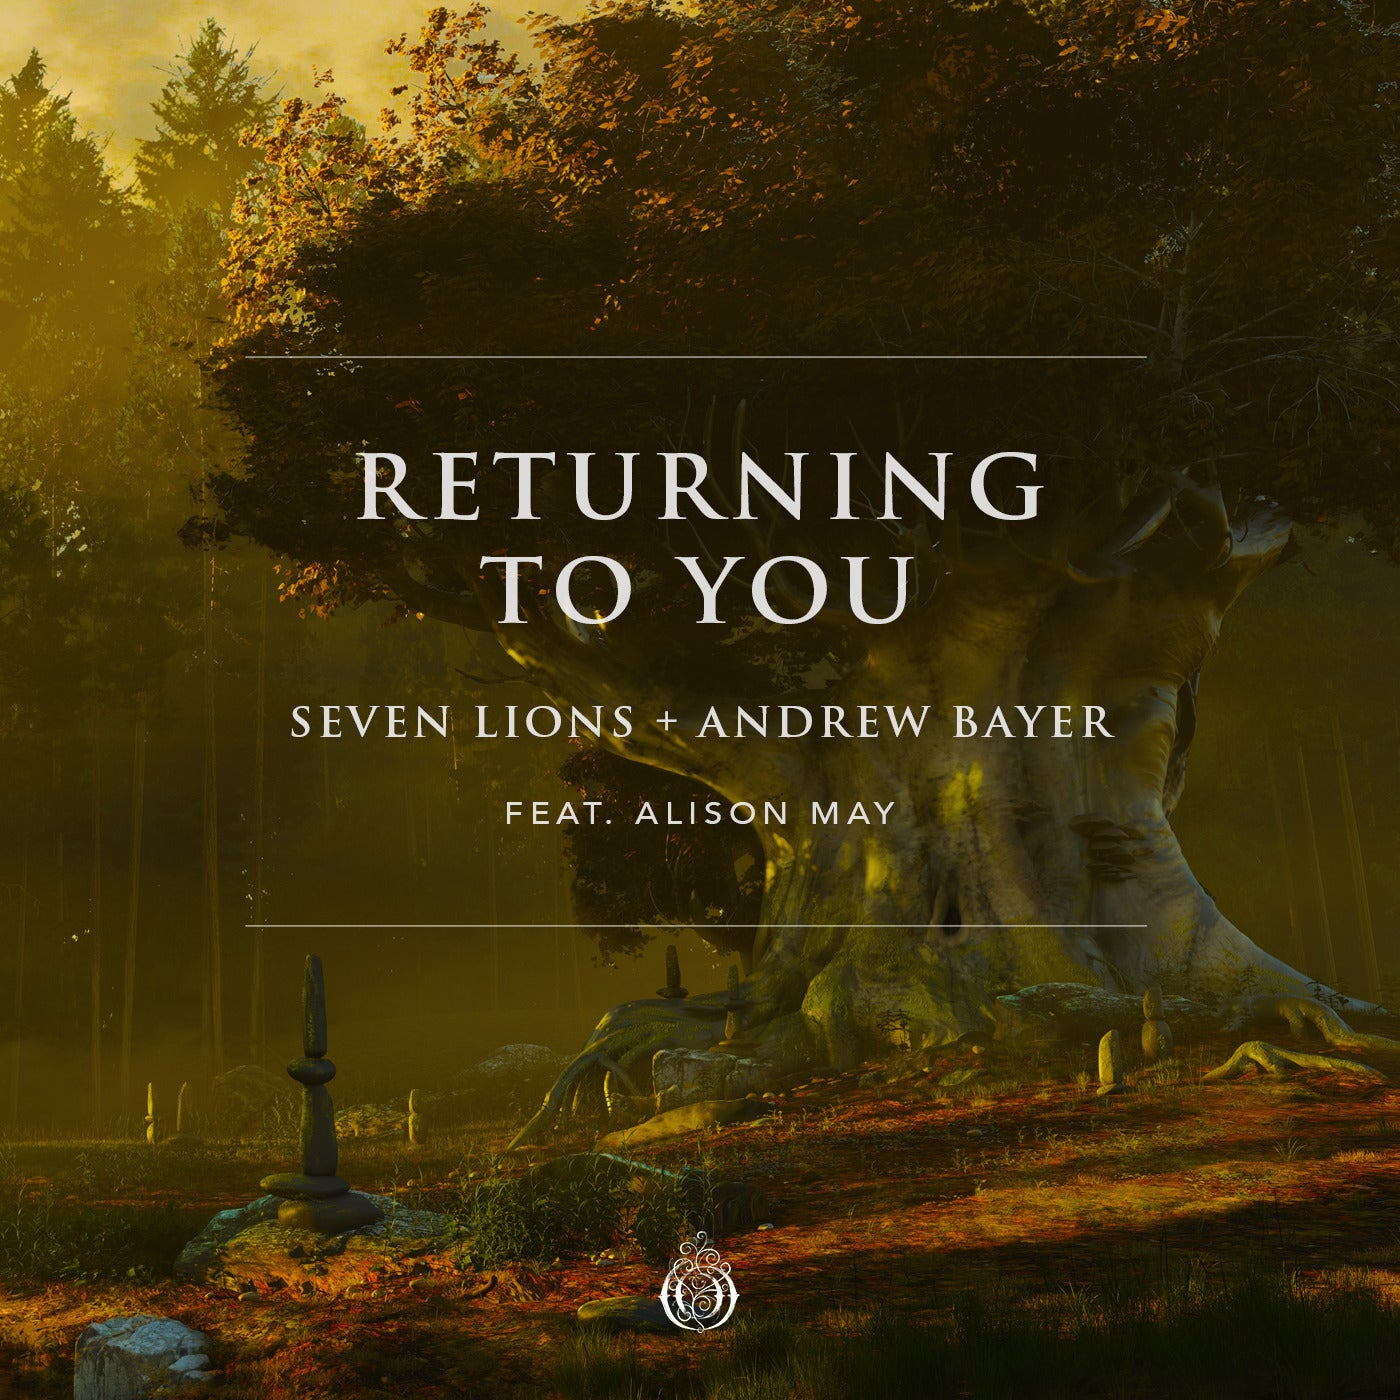 Returning To You (feat. Alison May) feat. Alison May (Original Mix)